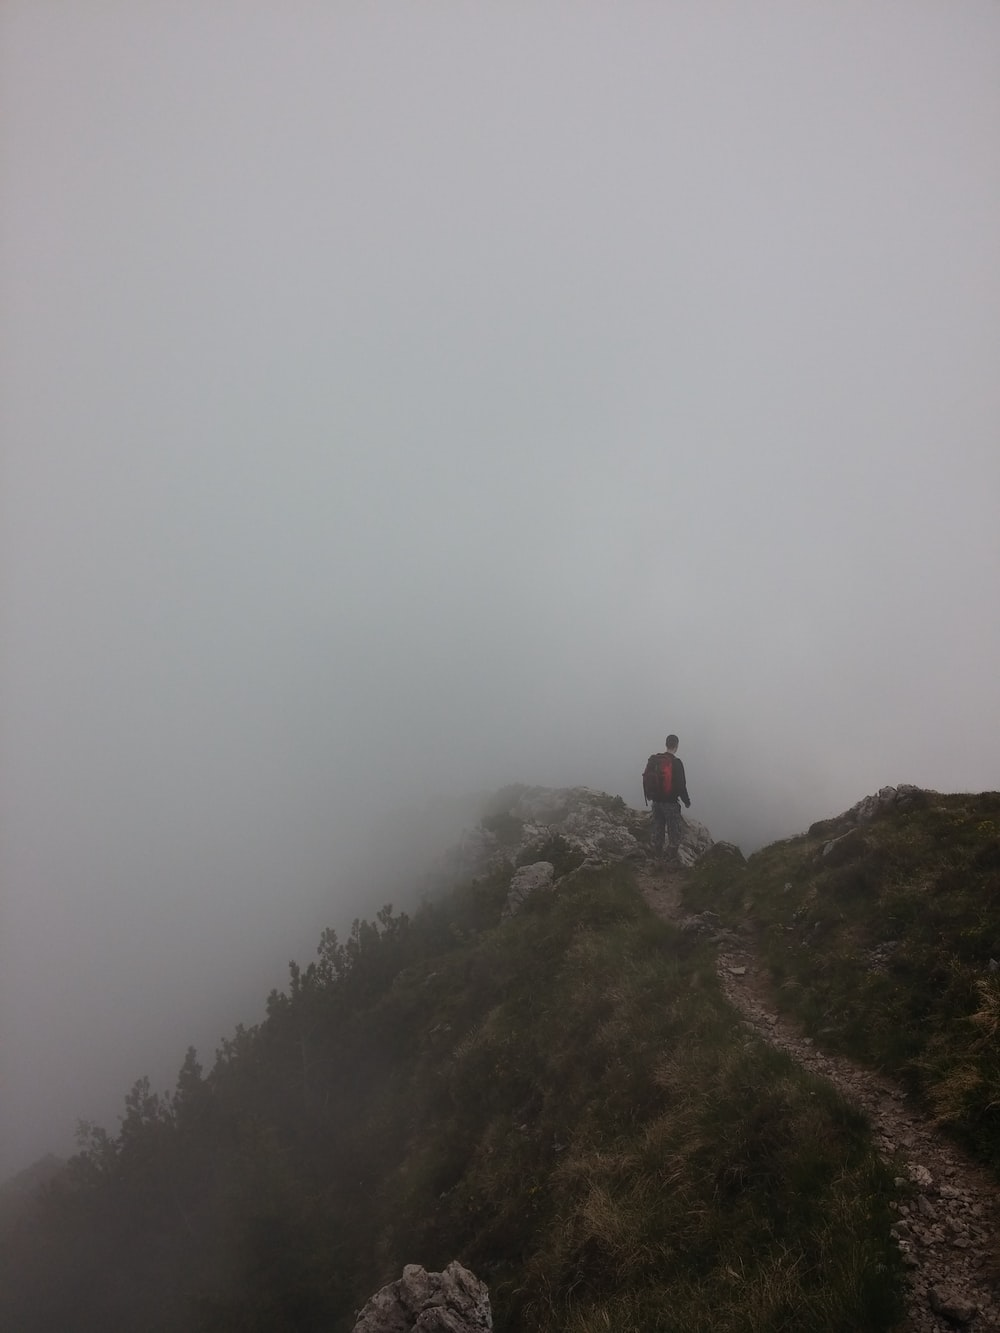 man standing on hill with fogs